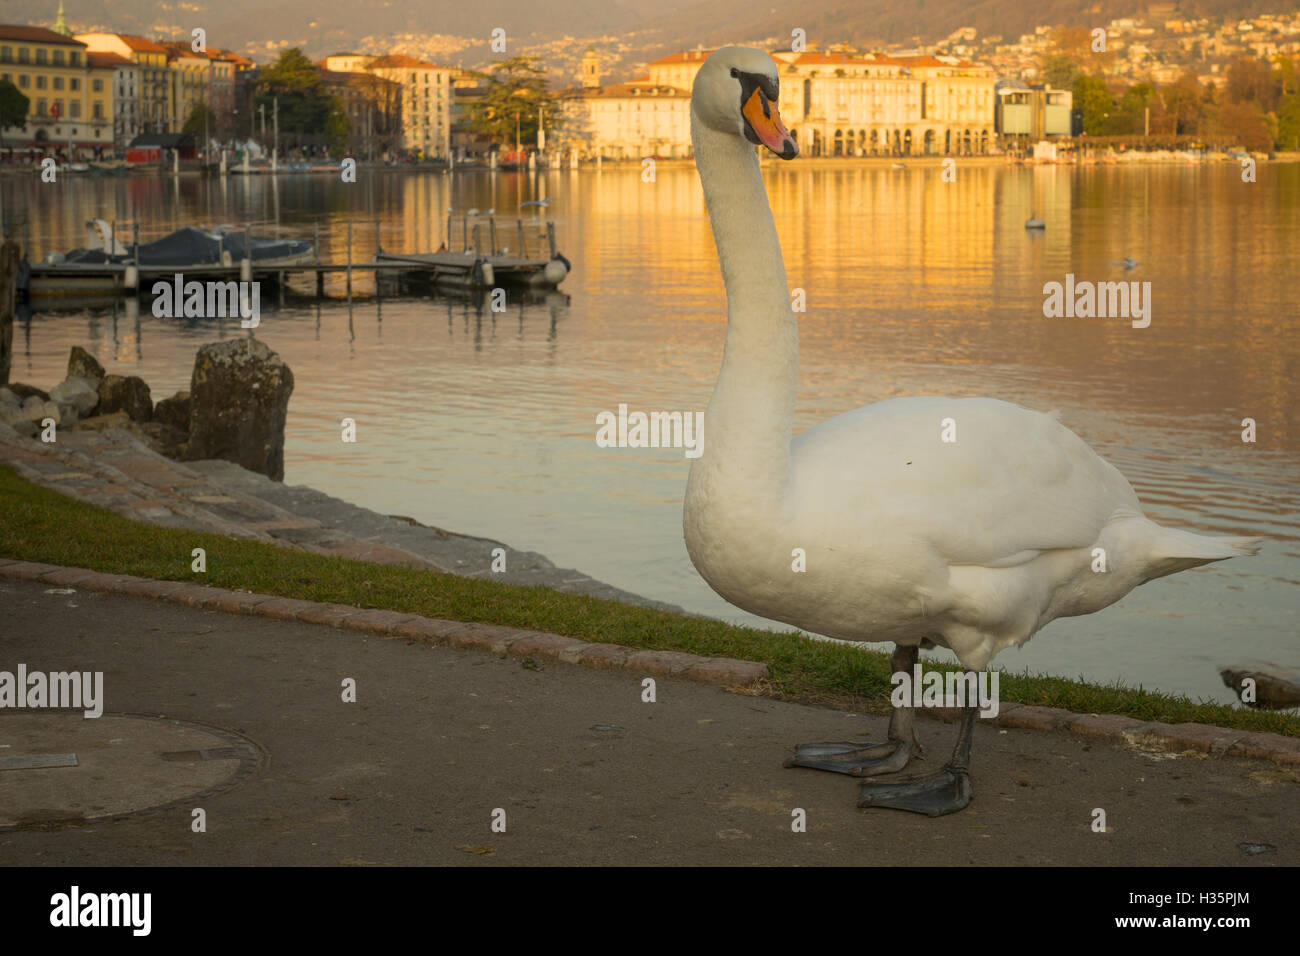 Swans on the lakeside promenade, at sunset, in Lugano, Ticino, Switzerland Stock Photo